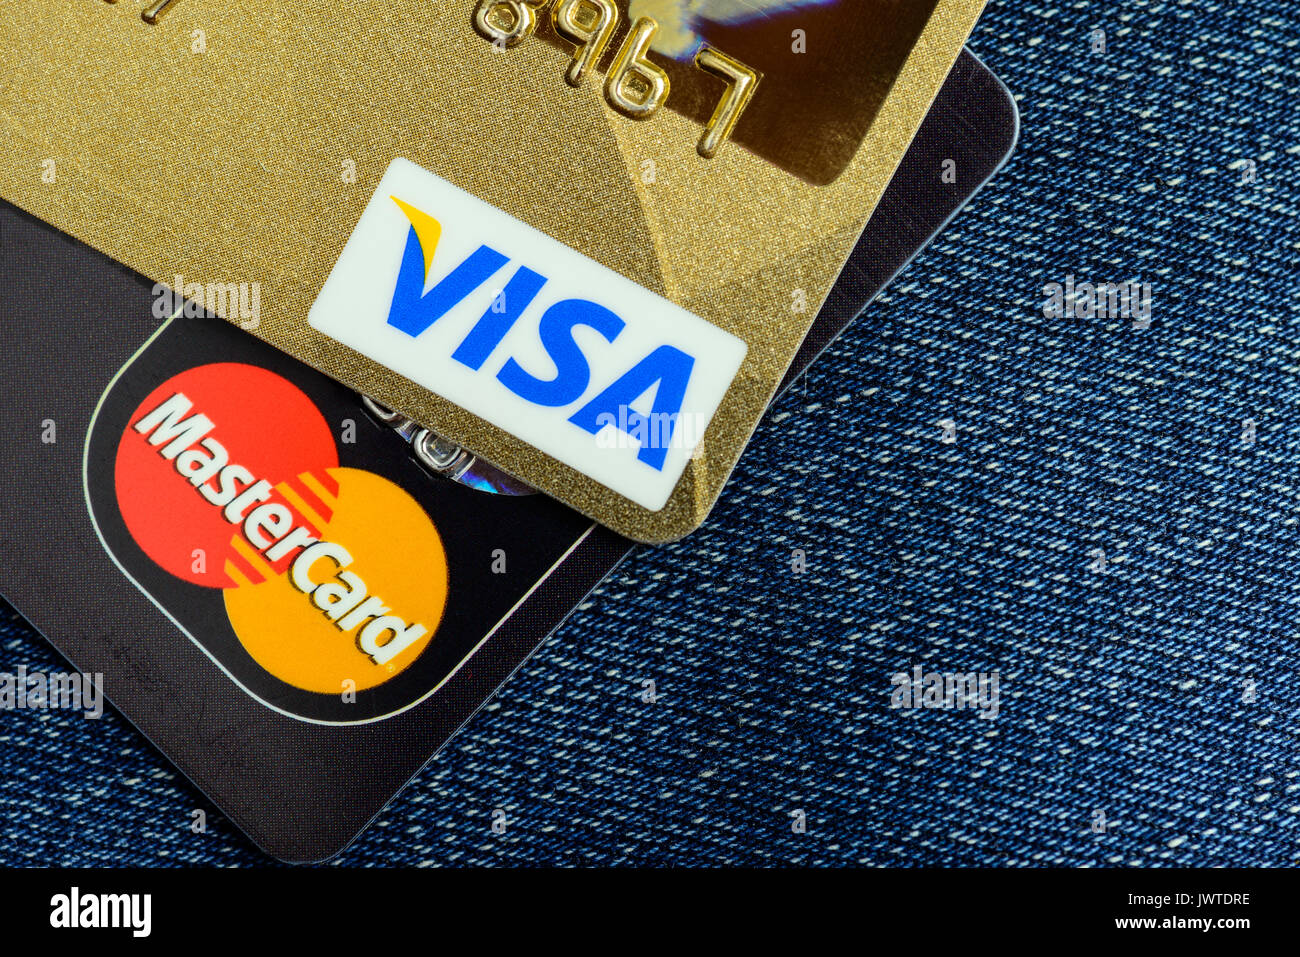 Moscowi, Russia - August 05, 2017: Visa and Mastercard credit cards over blue jeans - Stock Image